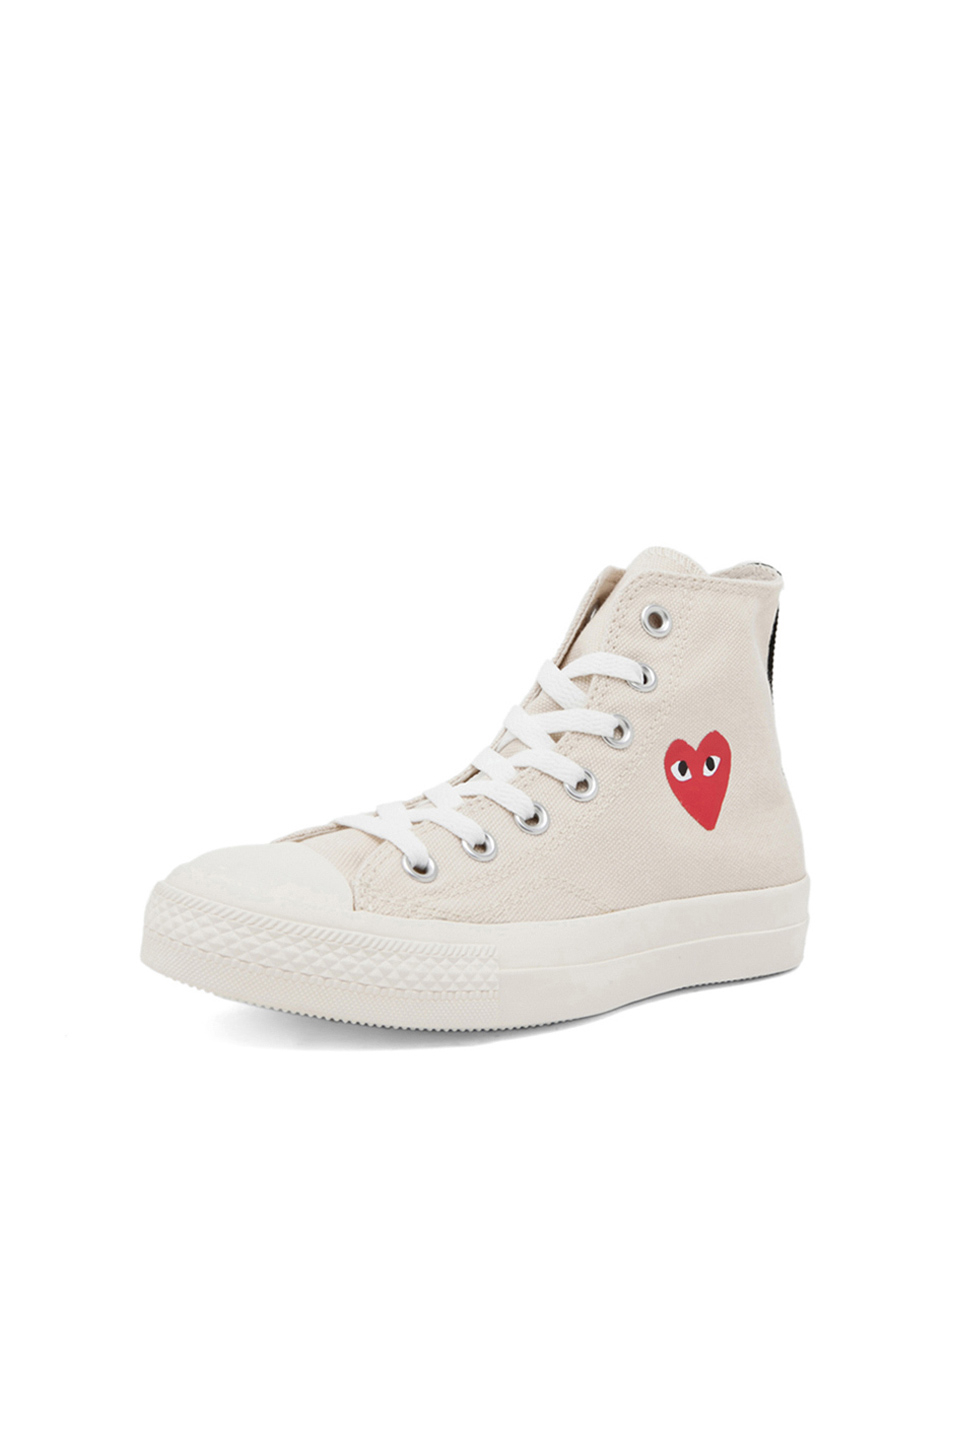 b85ea35ae0a3 Lyst - Play Comme des Garçons Converse High Top Canvas Sneakers in White